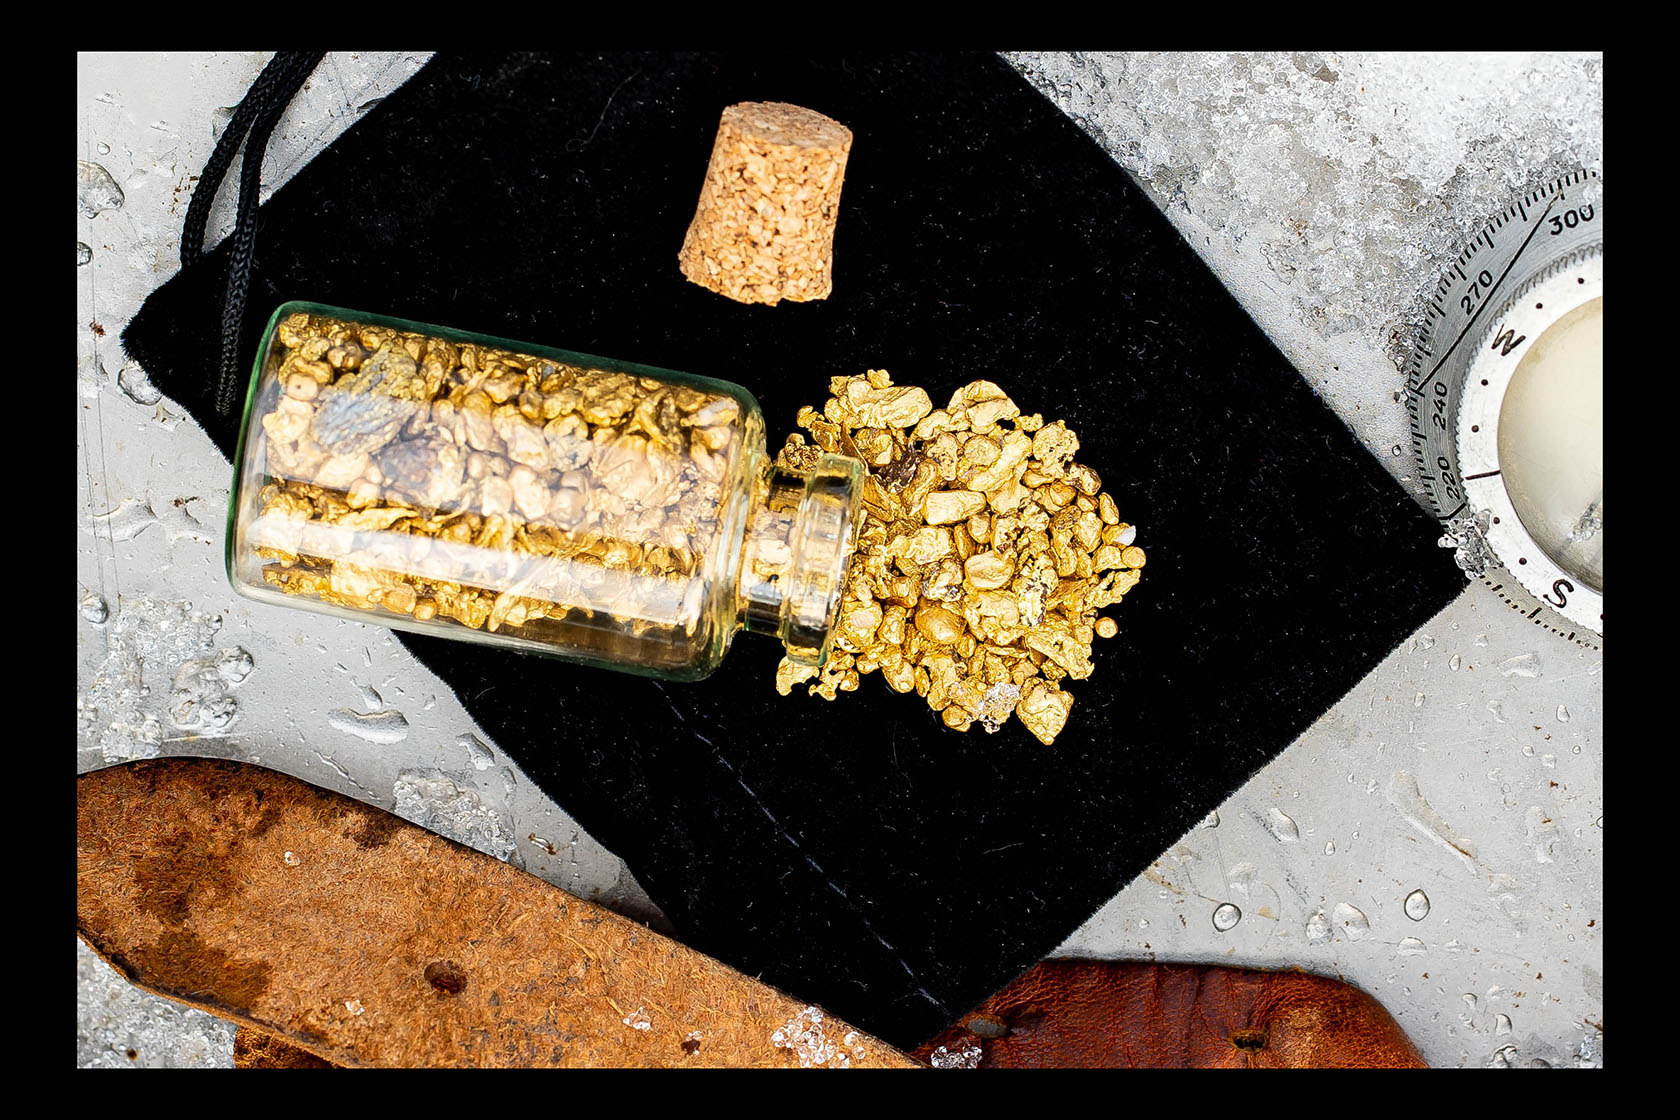 Cold Foot Creek, Alaska - 3 grams of natural gold nuggets